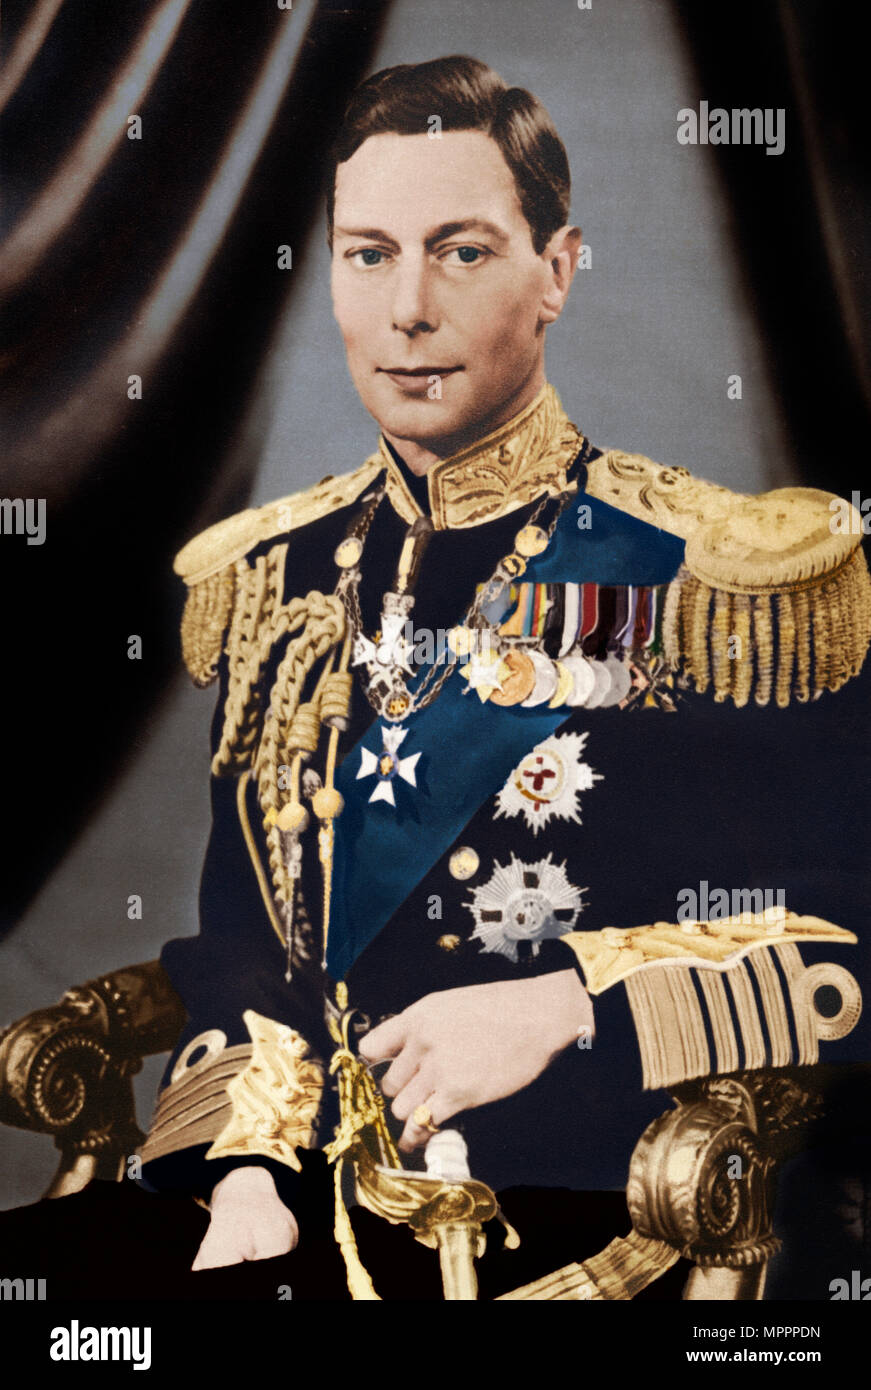 'His Majesty King George VI', c1936. Artist: Captain P North. - Stock Image